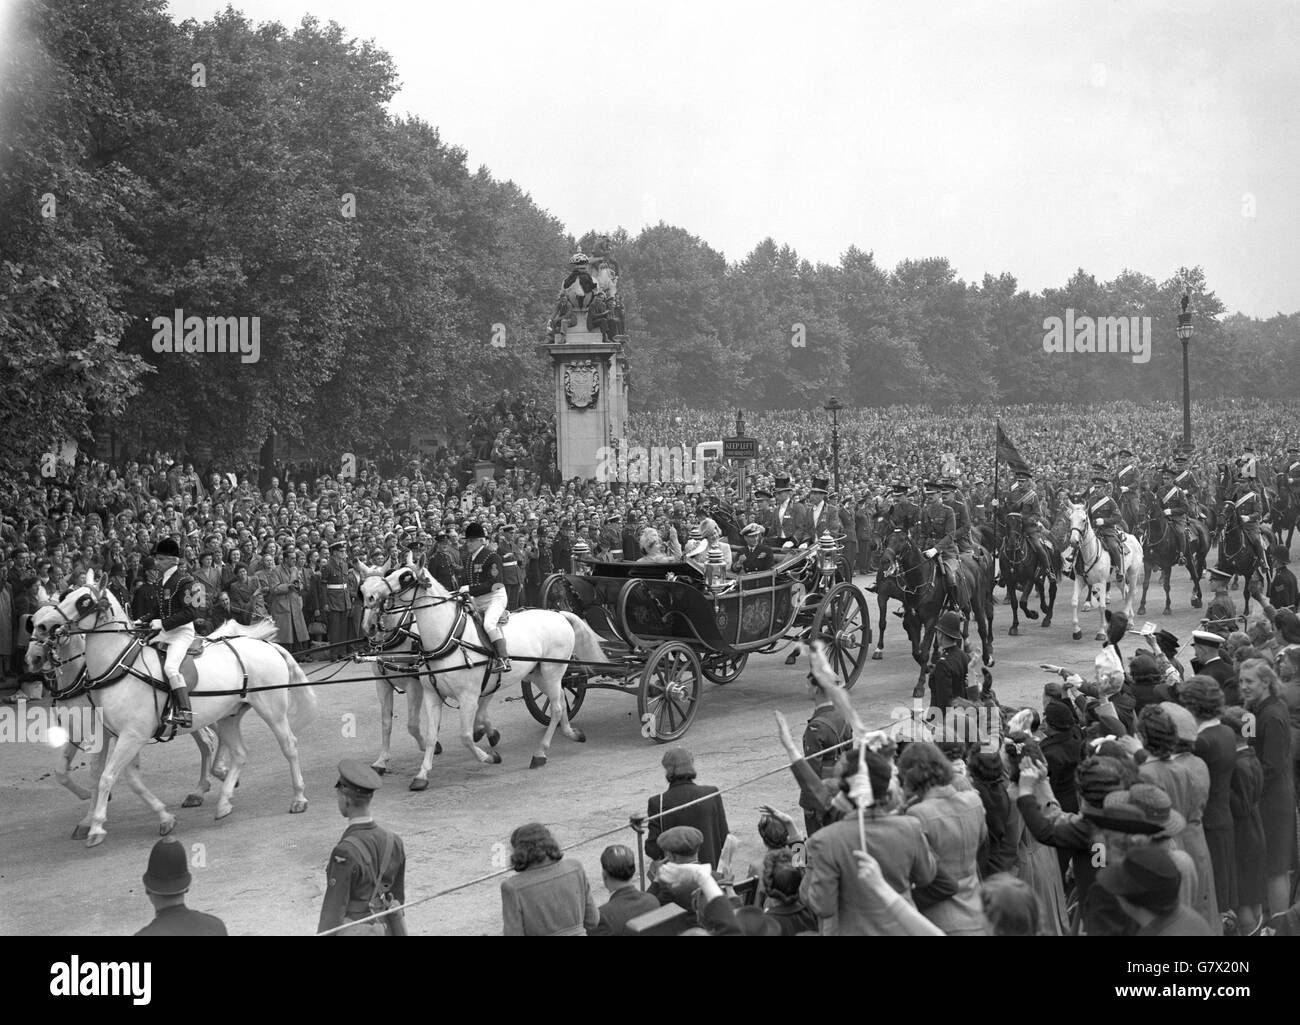 Royalty - Victory Day - Buckingham Palace, London - Stock Image